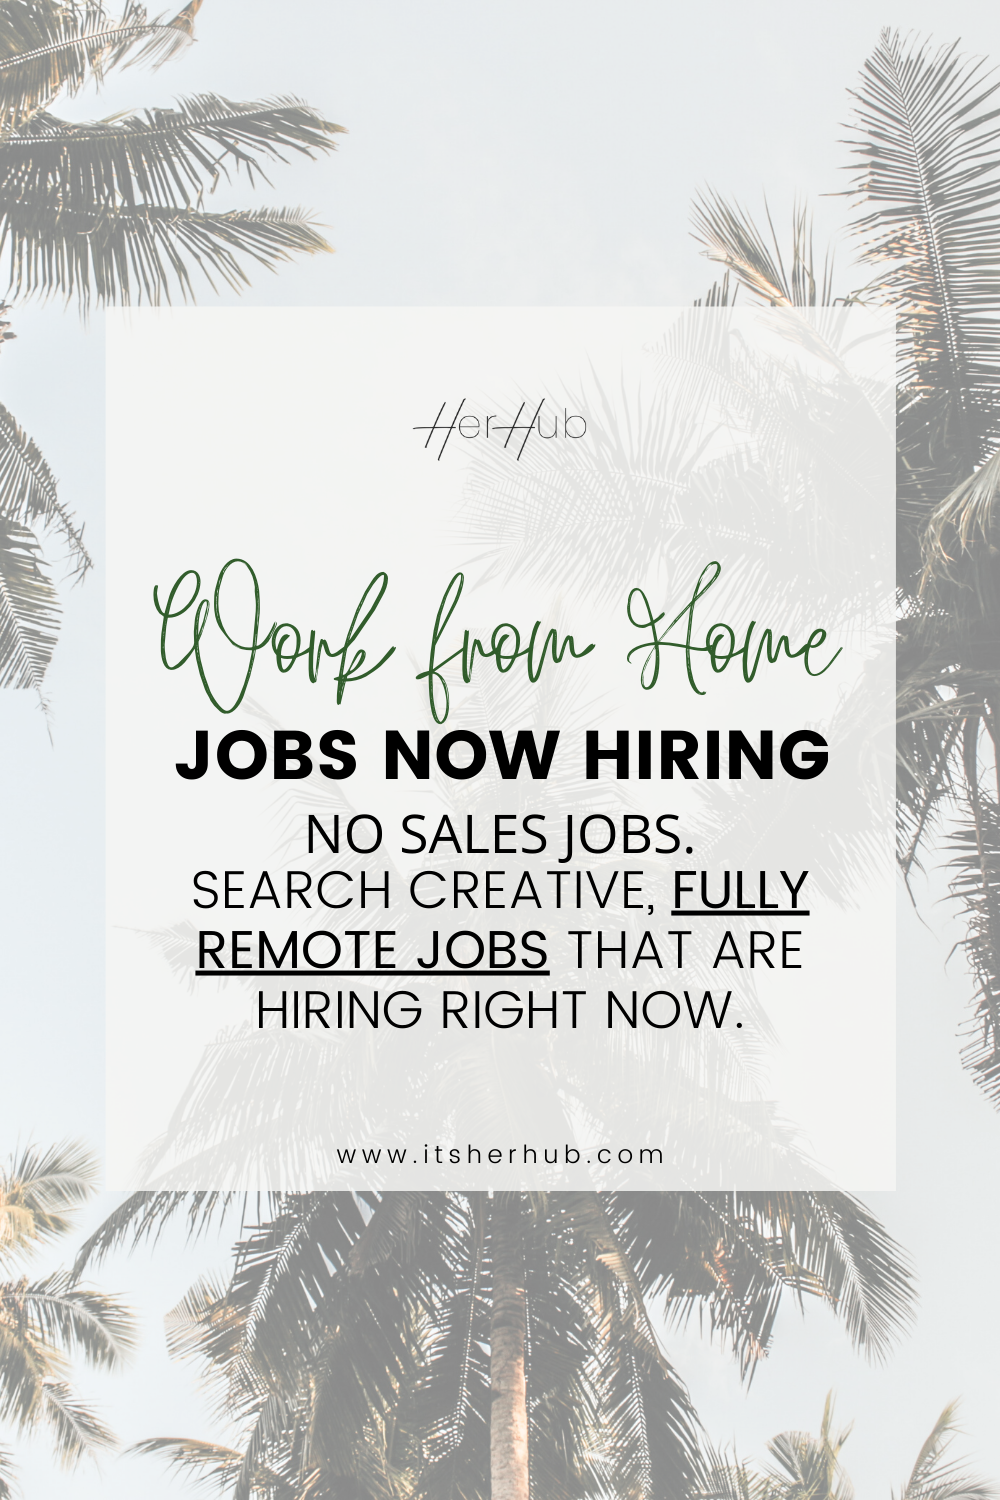 Remote Jobs Now Hiring Work From Home Her Hub in 2020